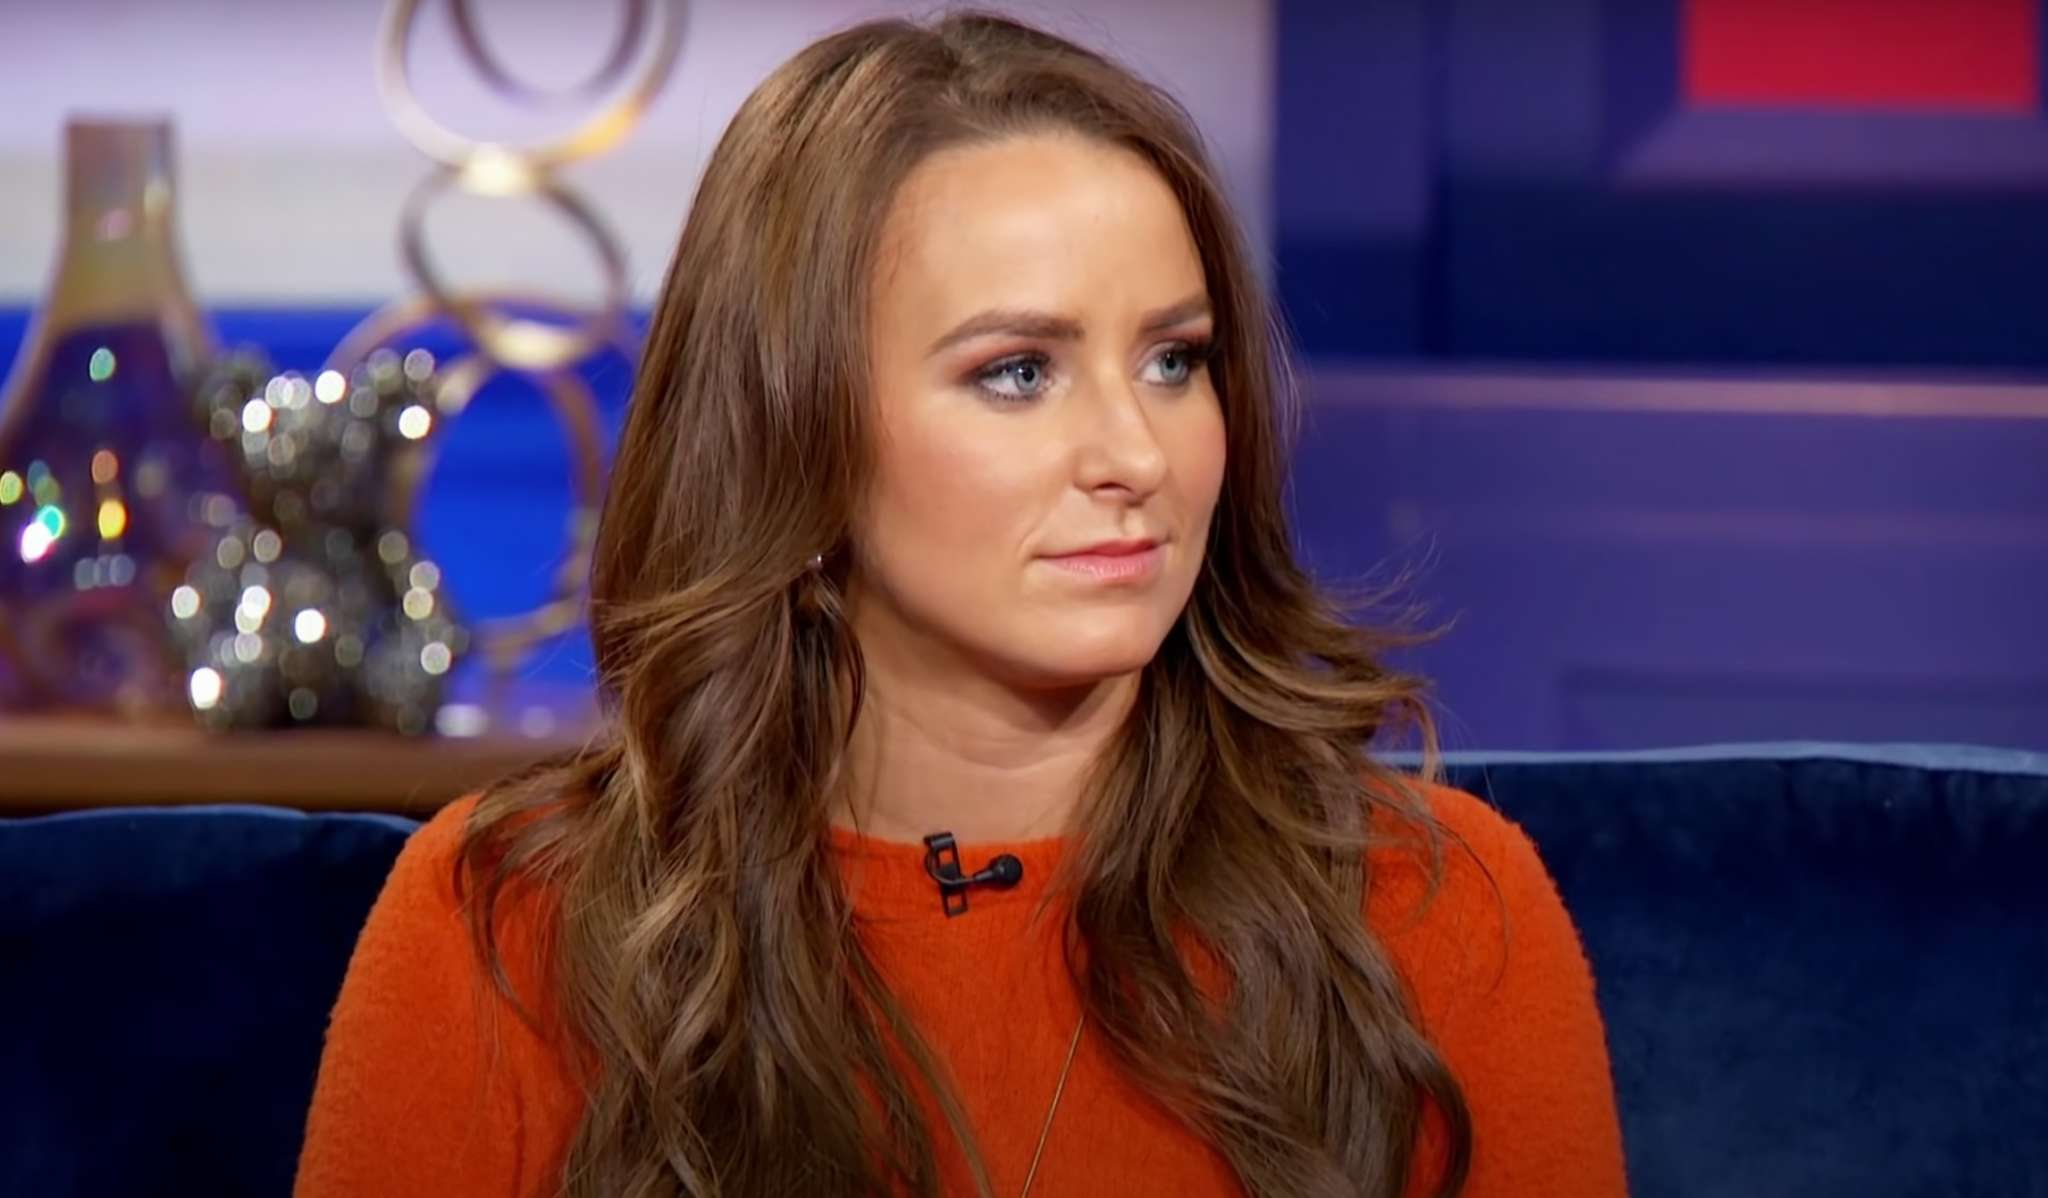 Leah Messer Defends Her Daughter After Haters Criticize Her For Putting Gum On A Mic On The Latest Teen Mom Episode!